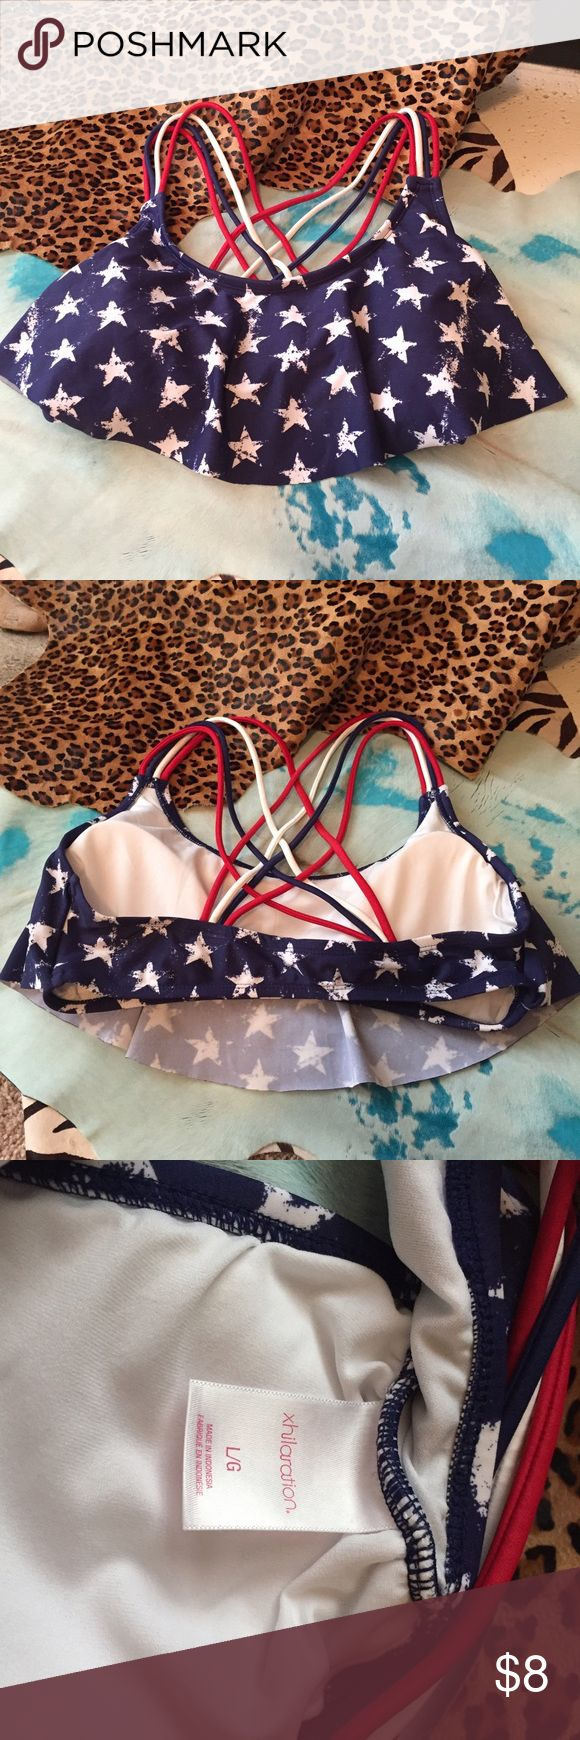 American flag bikini top target Never been worn in perfect condition.  Any offers or shares will help me so much to pay medical bills for my heart surgery. Comes from a pet free and smoke free home! Blessings! Xhilaration Swim Bikinis